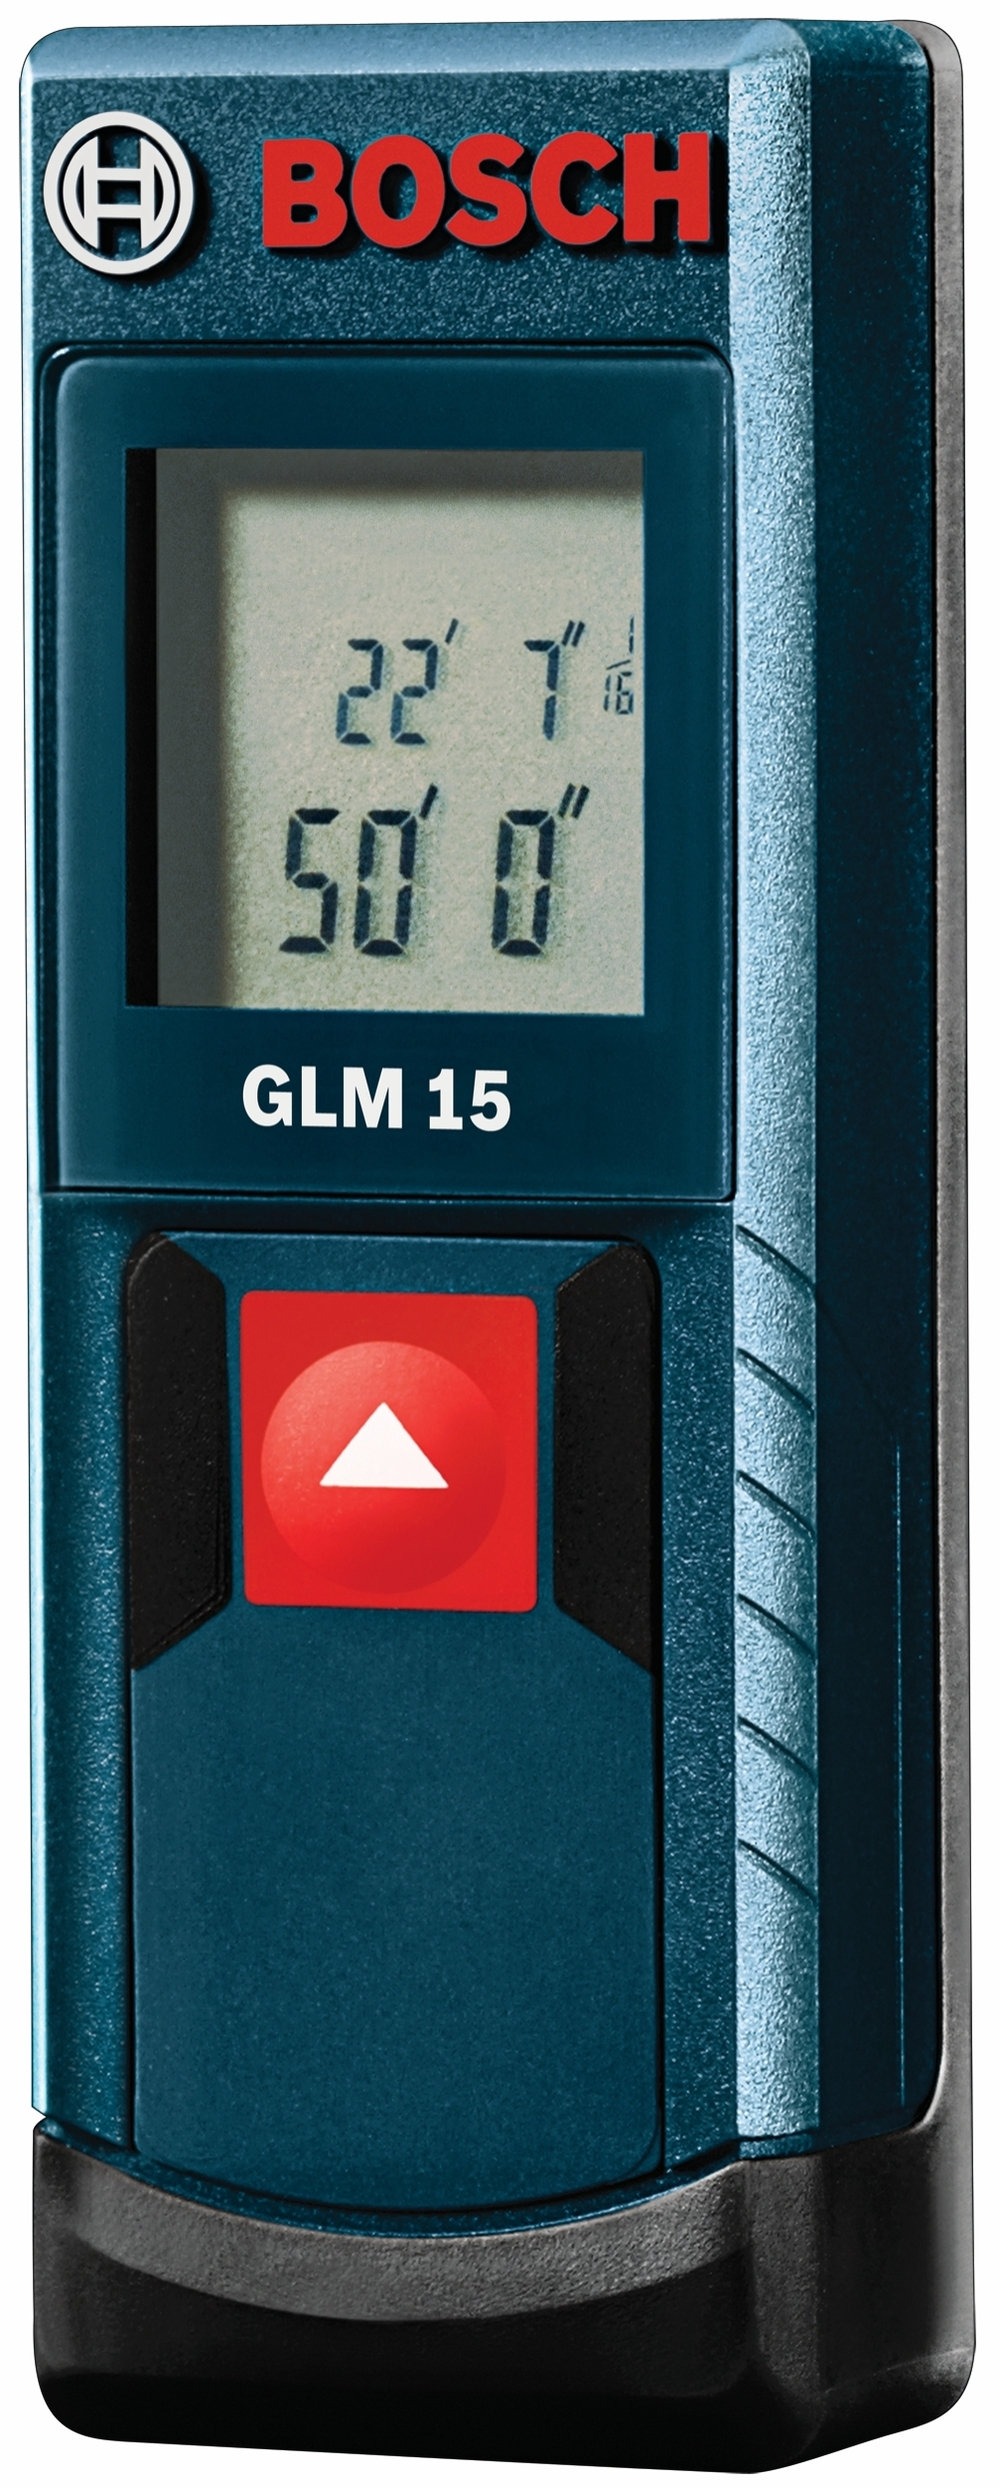 Bosch GLM 15 50 ft. Laser Measure, $50